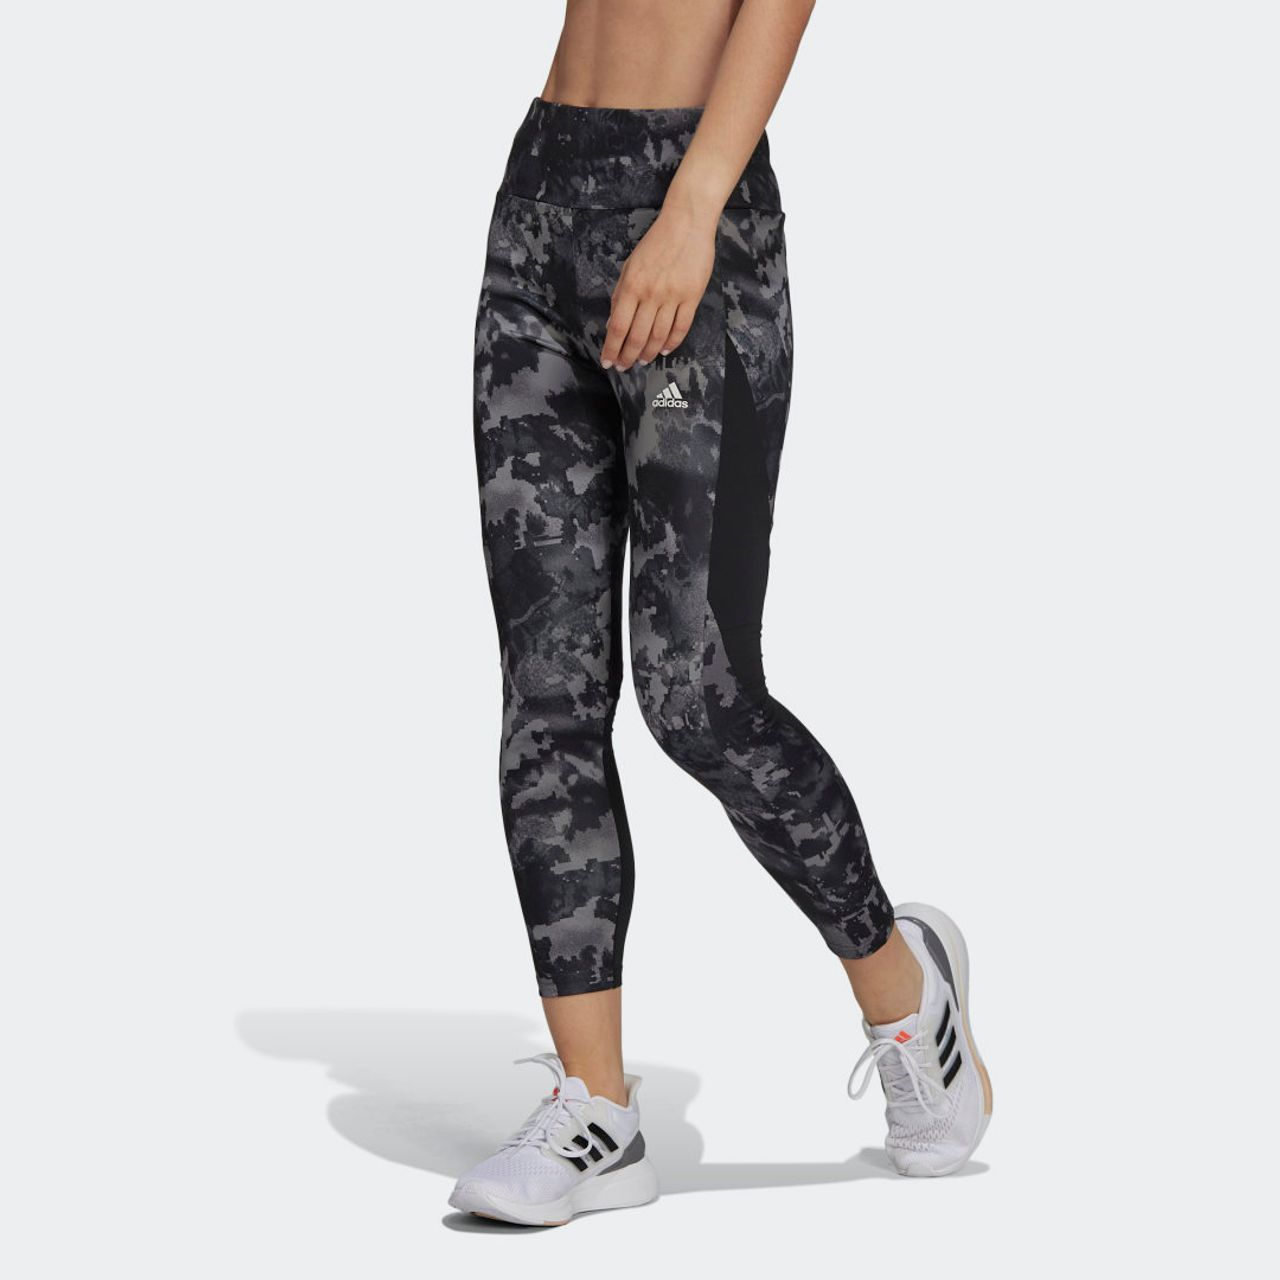 ADIDAS - ALL OVER PRINT TIGHT XL